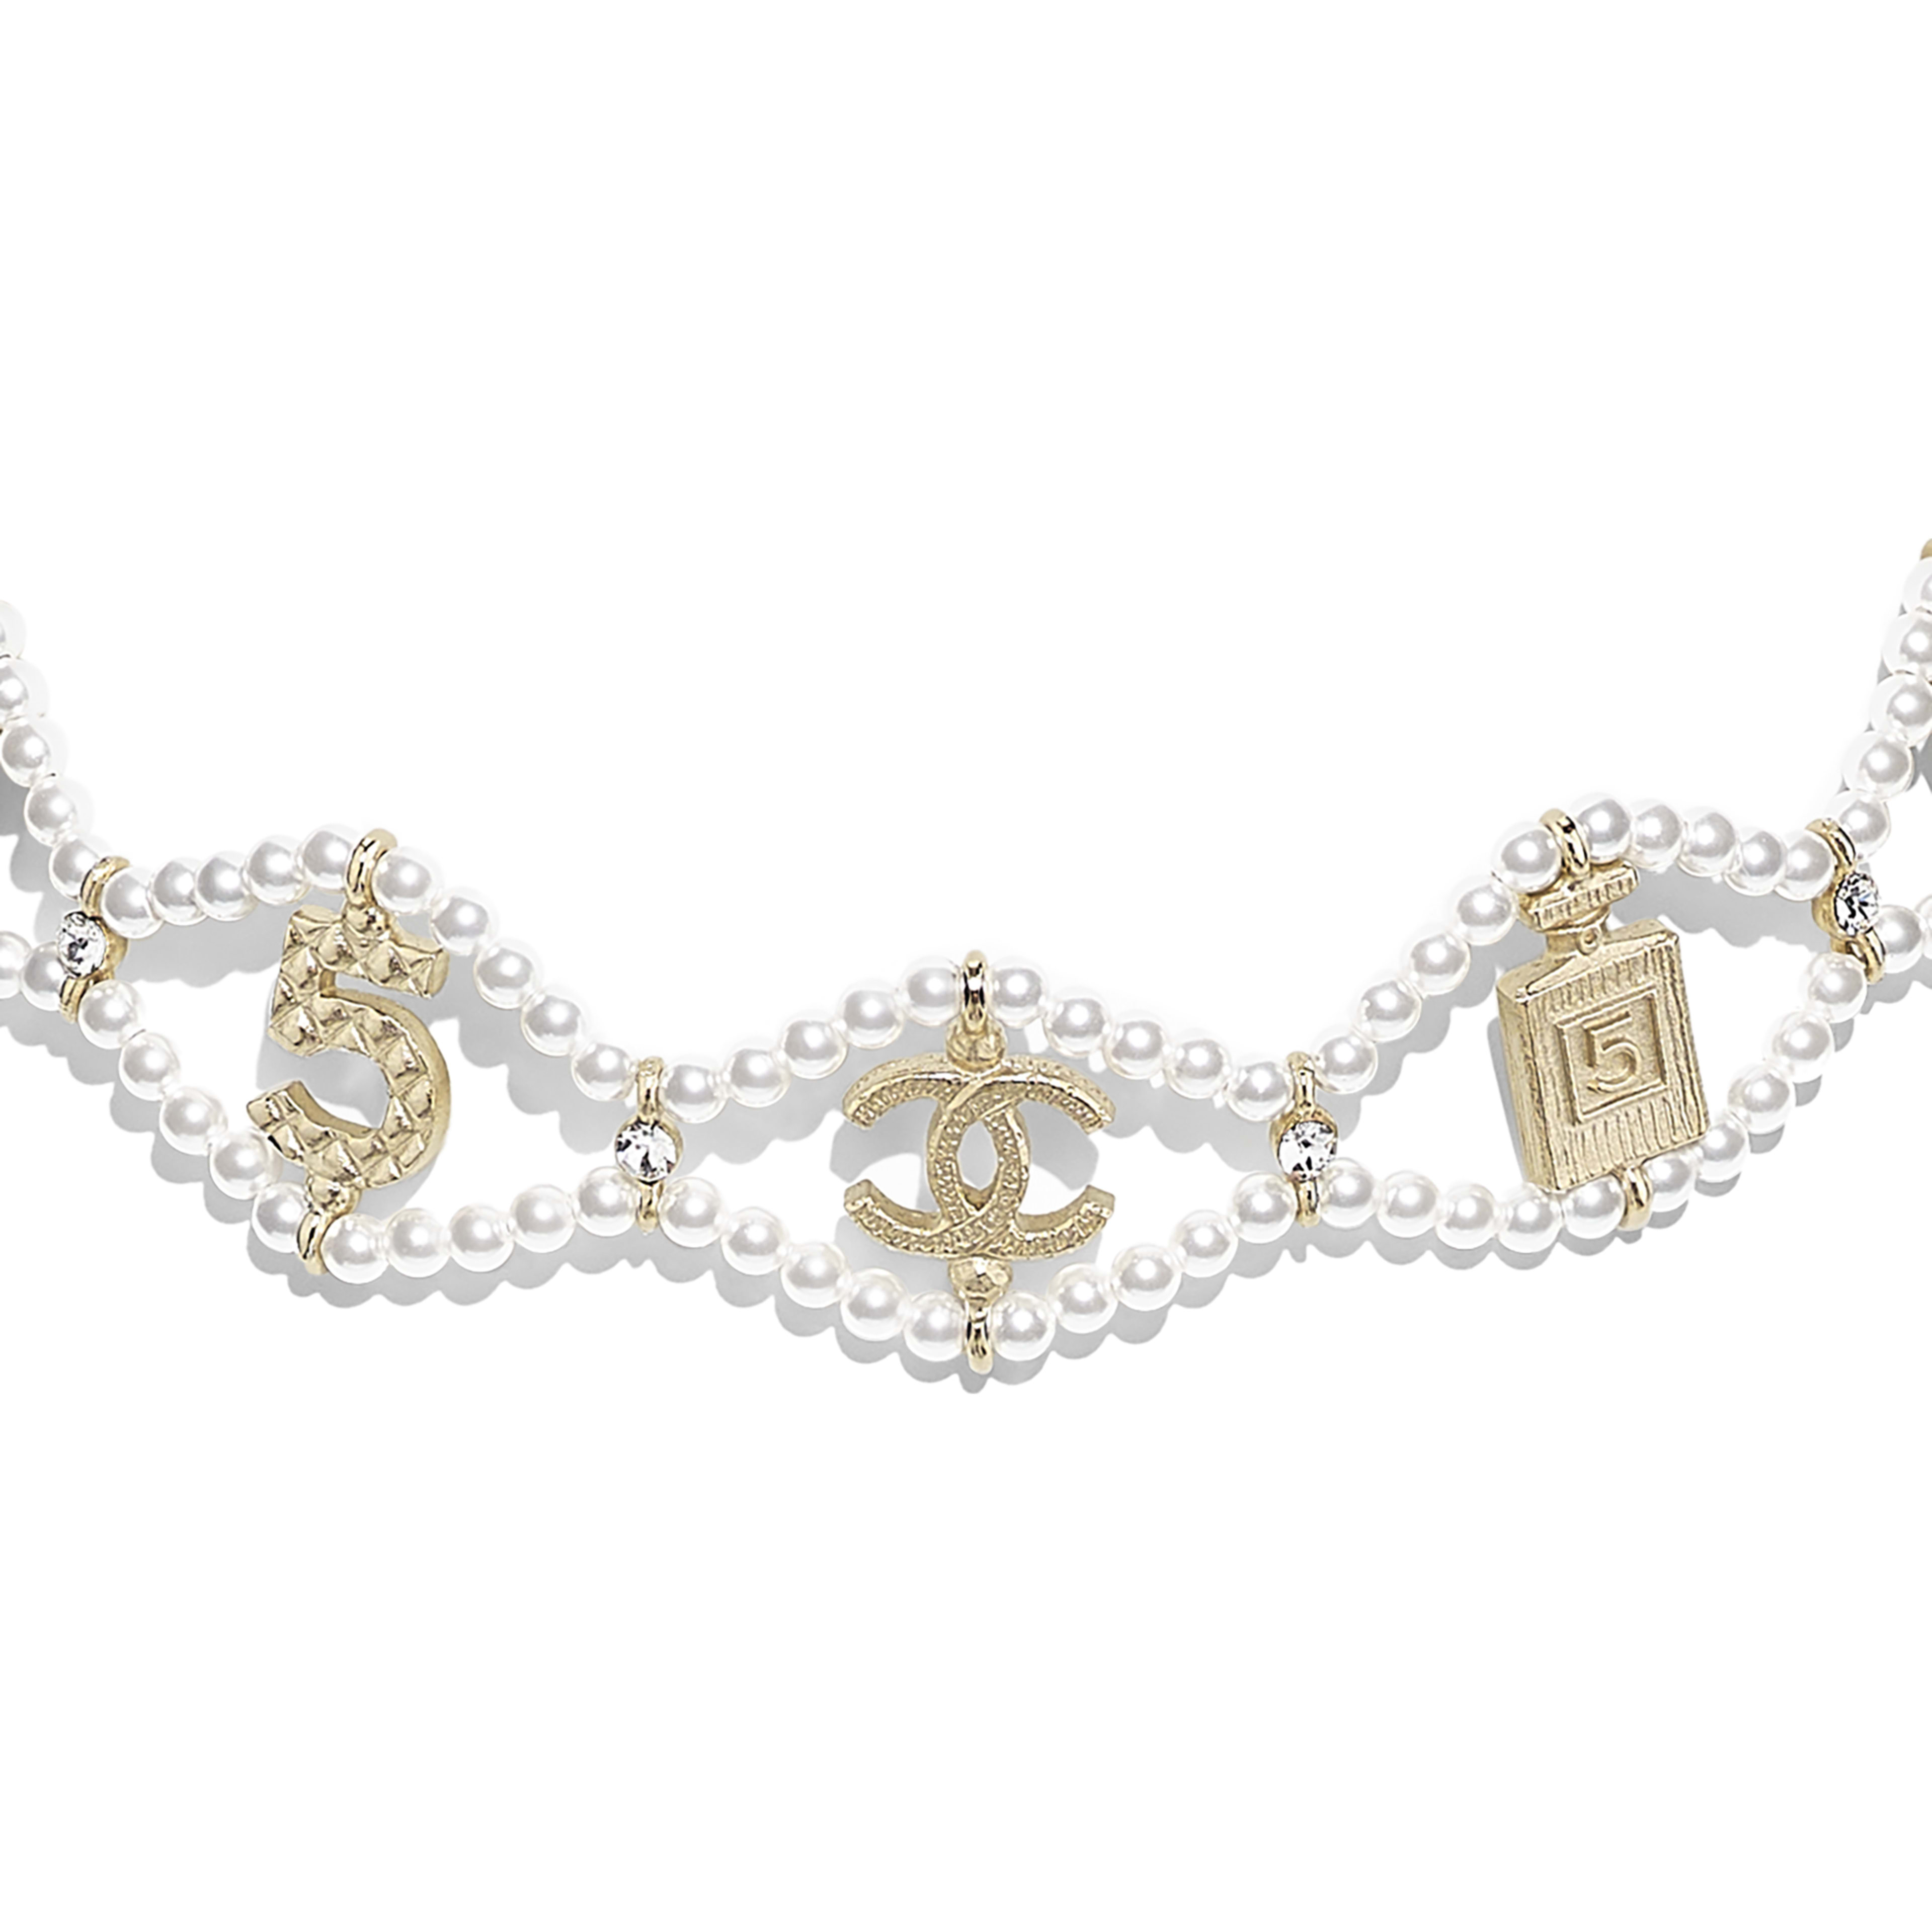 Choker - Gold, Pearly White & Crystal - Metal, Glass Pearls & Diamantés - Other view - see full sized version